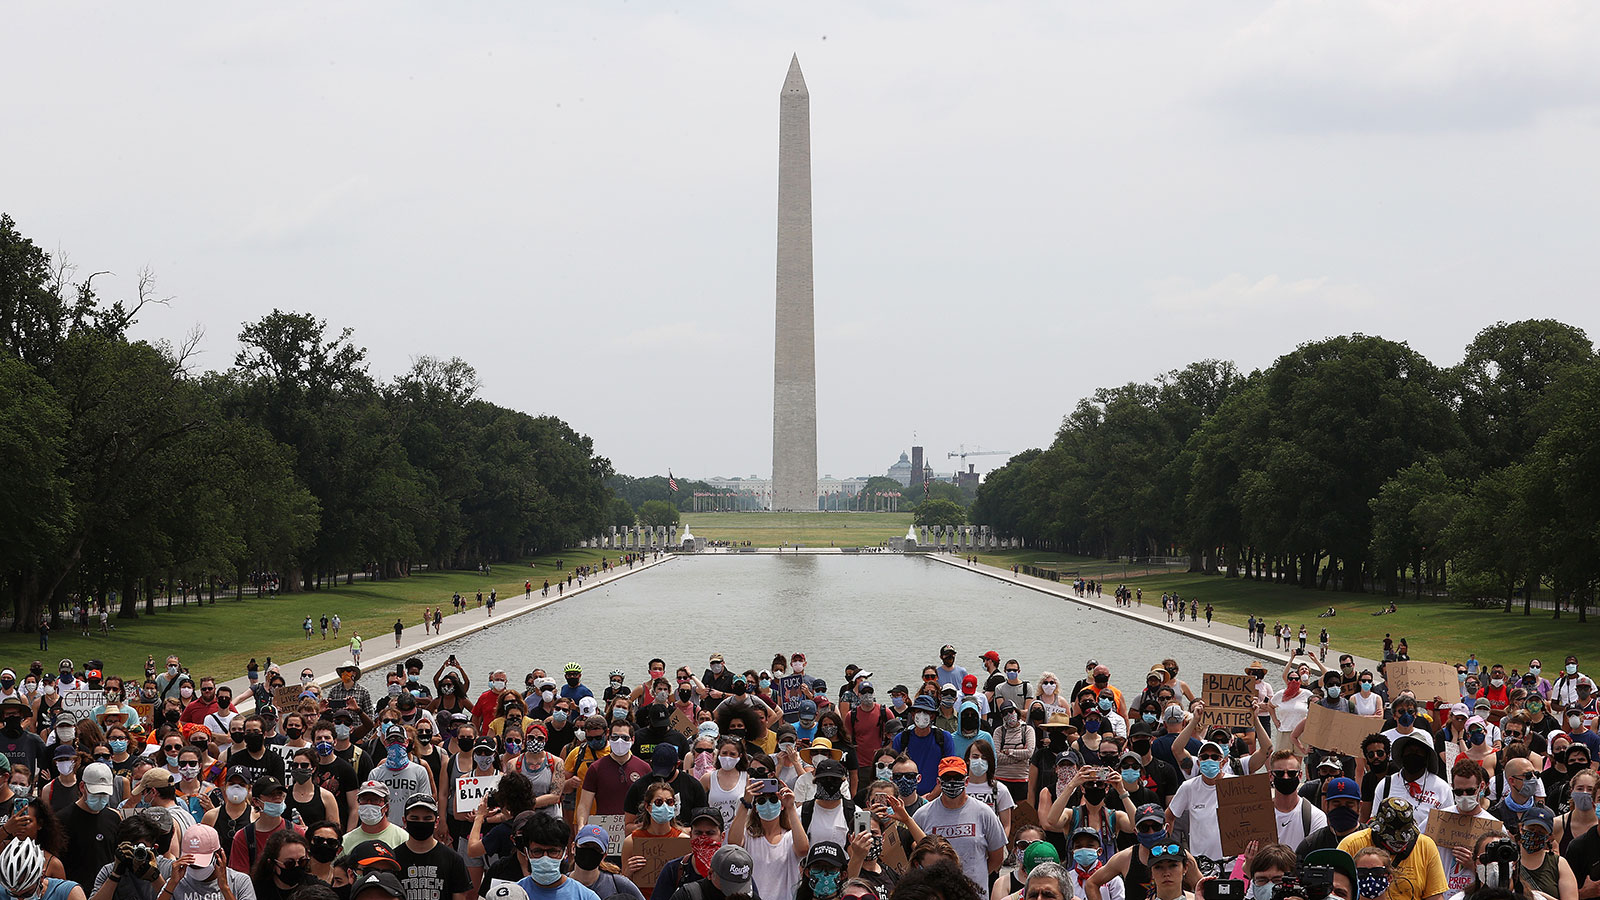 Demonstrators gather in front of the Lincoln Memorial during a protest against police brutality and racism on June 6 in Washington, DC.